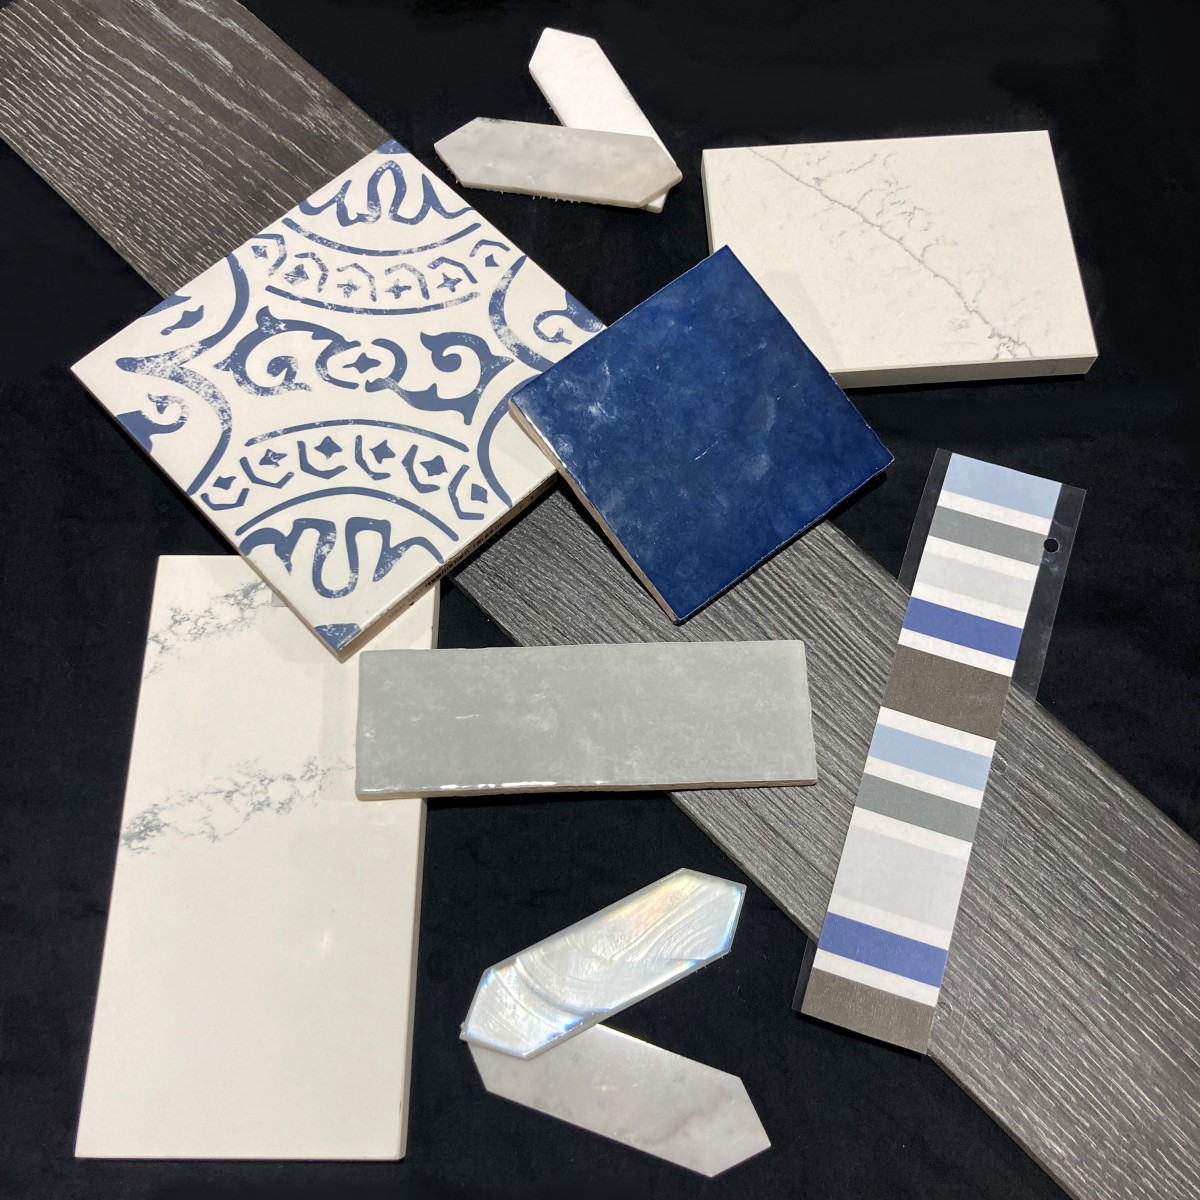 A mix of blue, gray, and white porcelain, ceramic, and glass tiles.